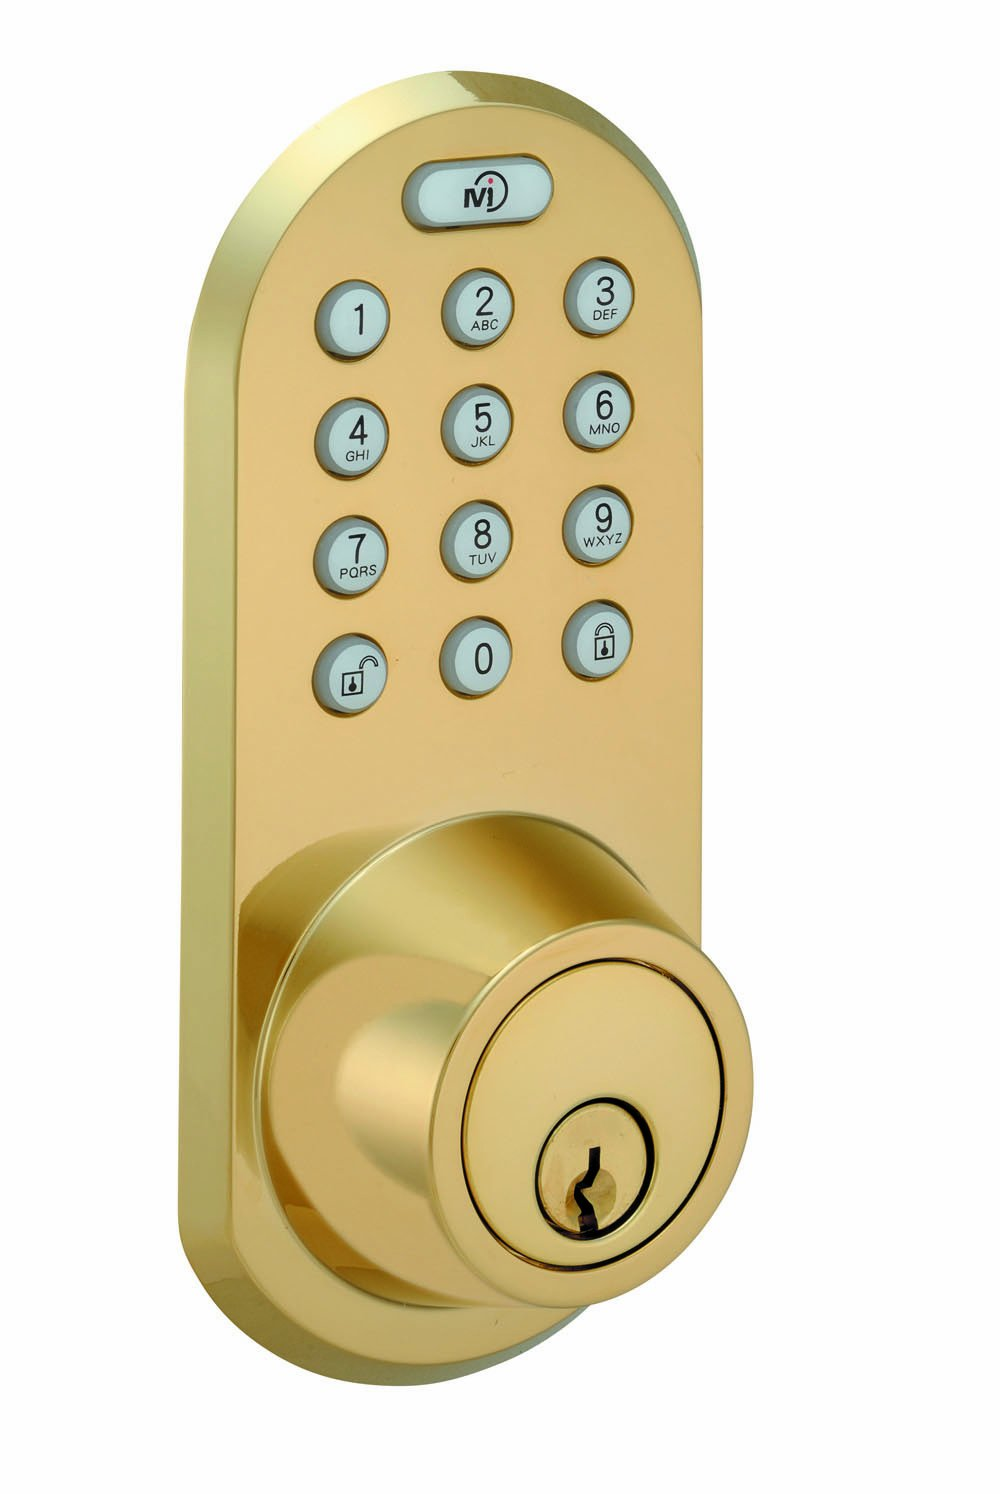 MORNING INDUSTRY INC QF-01P 3-In-1 Remote Control & Touchpad Dead Bolt, Polished Brass